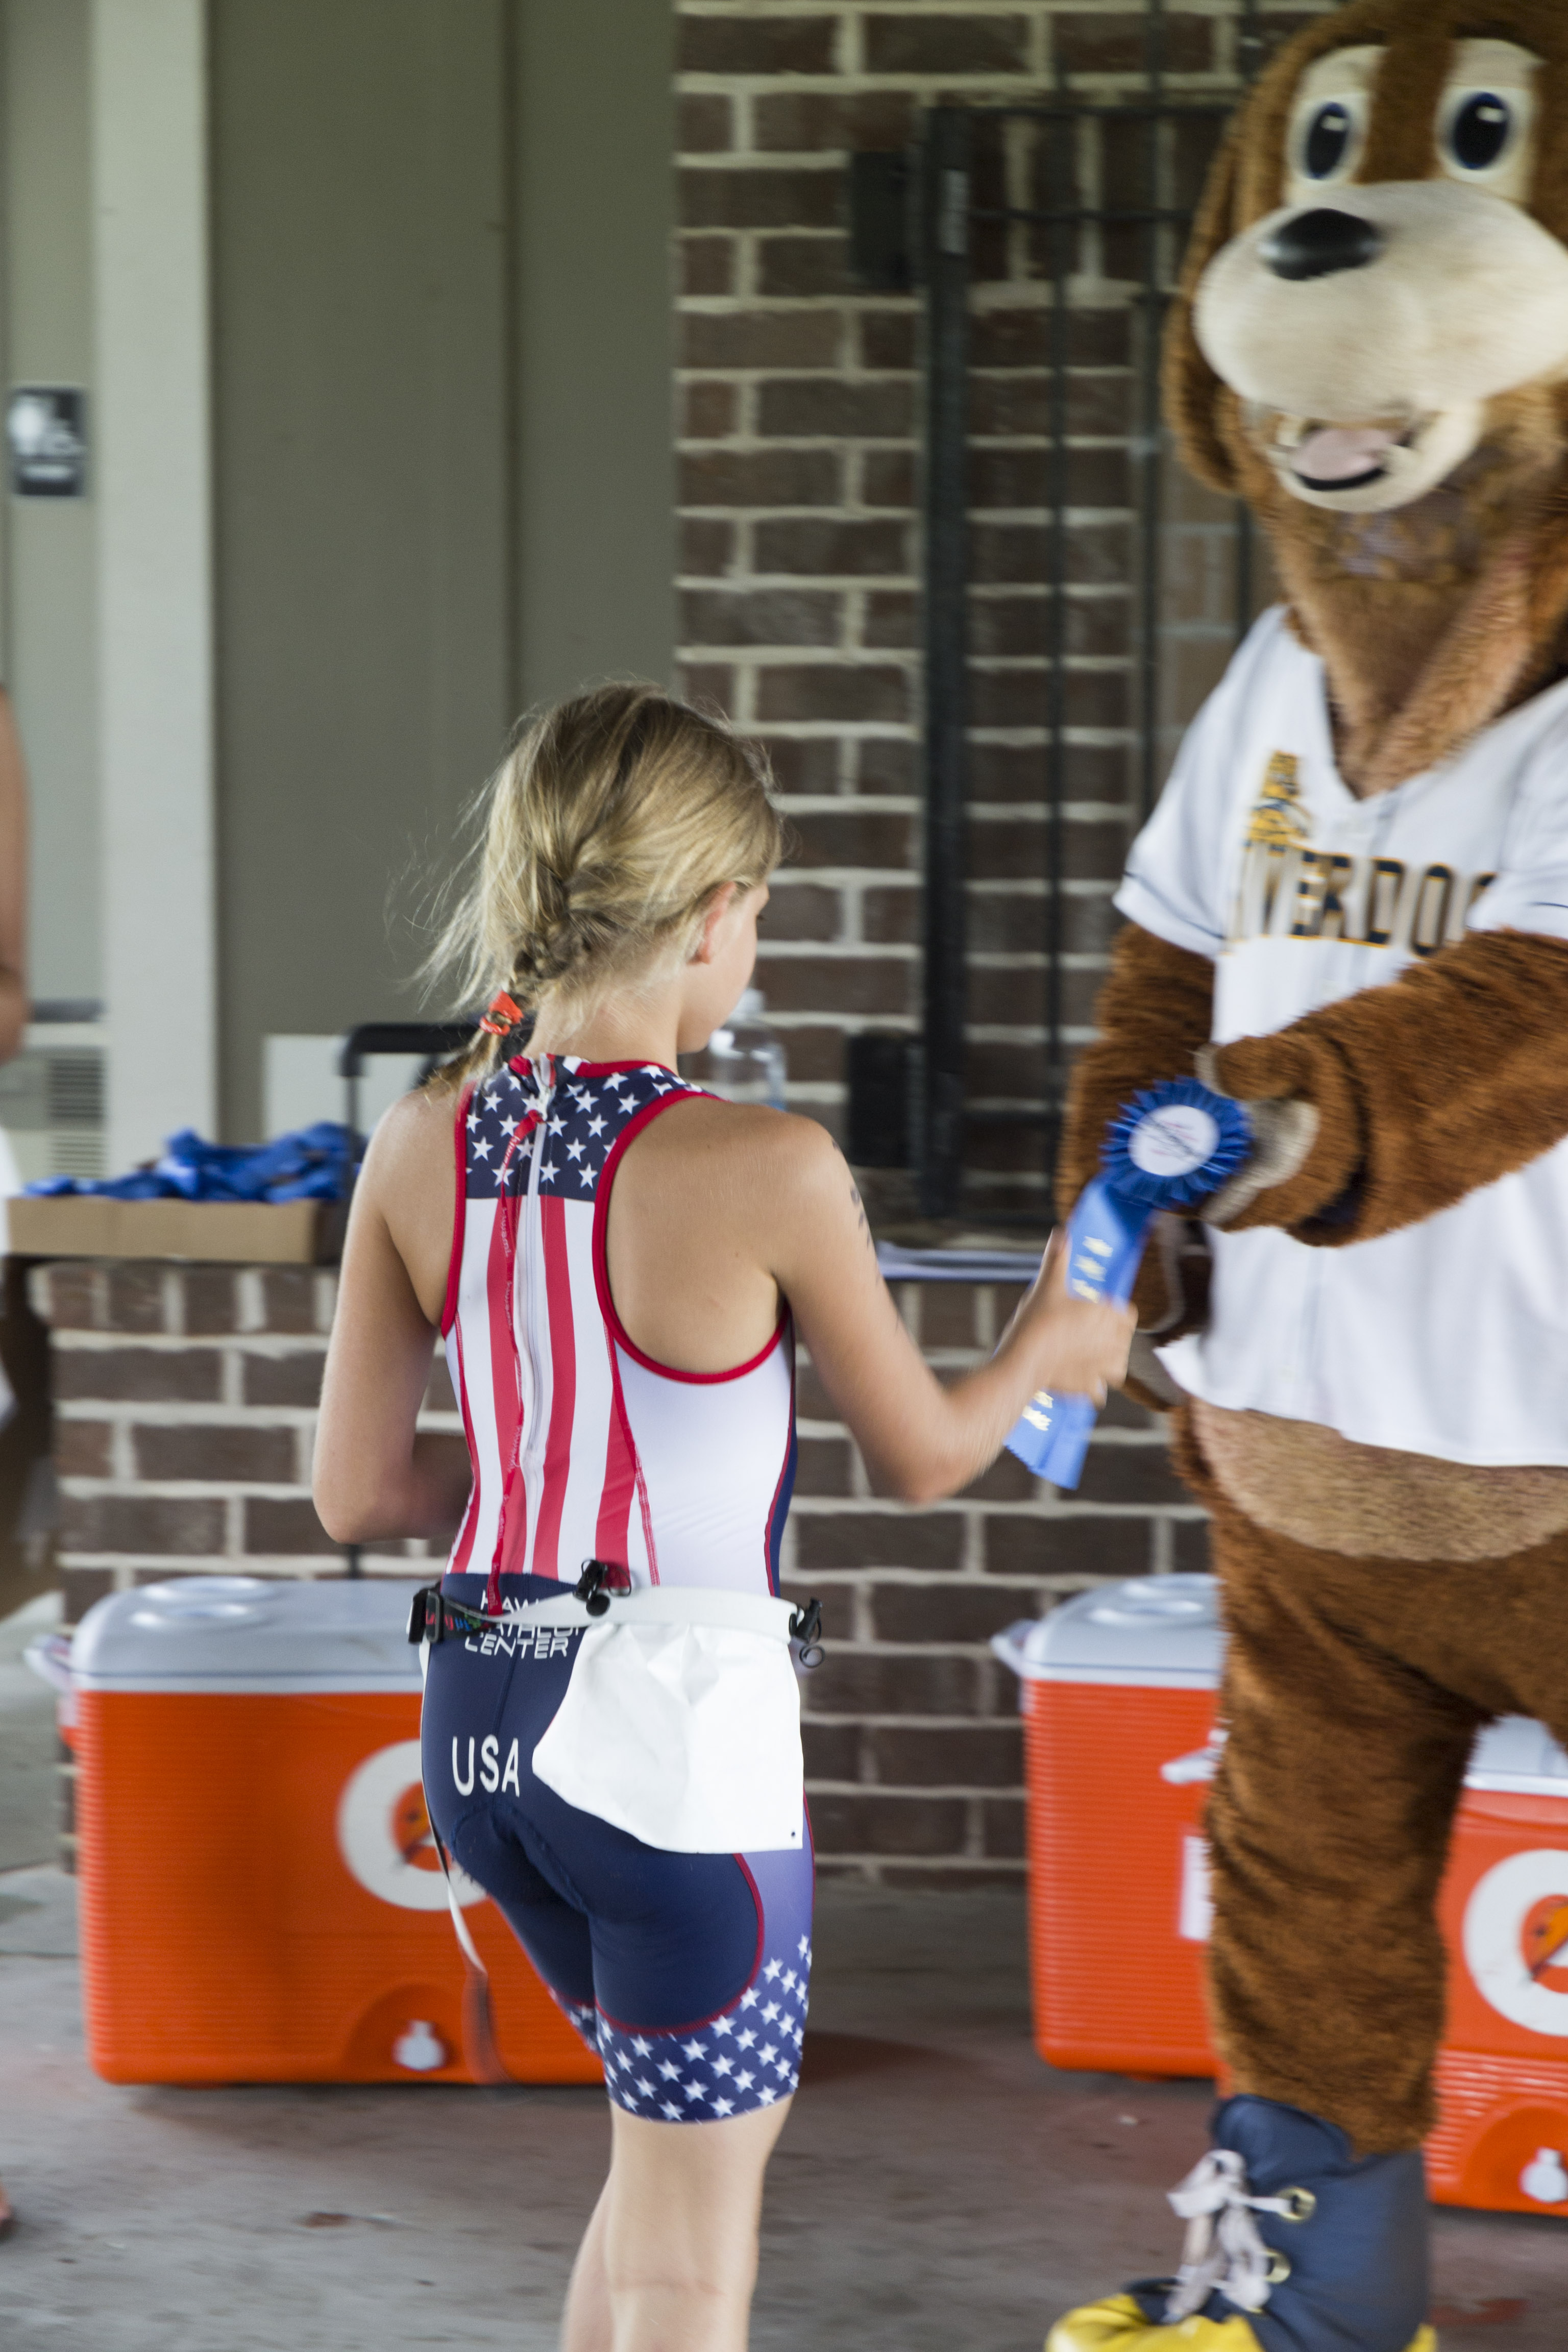 The Charleston Riverdogs mascot gets a handshake from Alaina Harris, the first place winner in the 9-10 girls' age group.